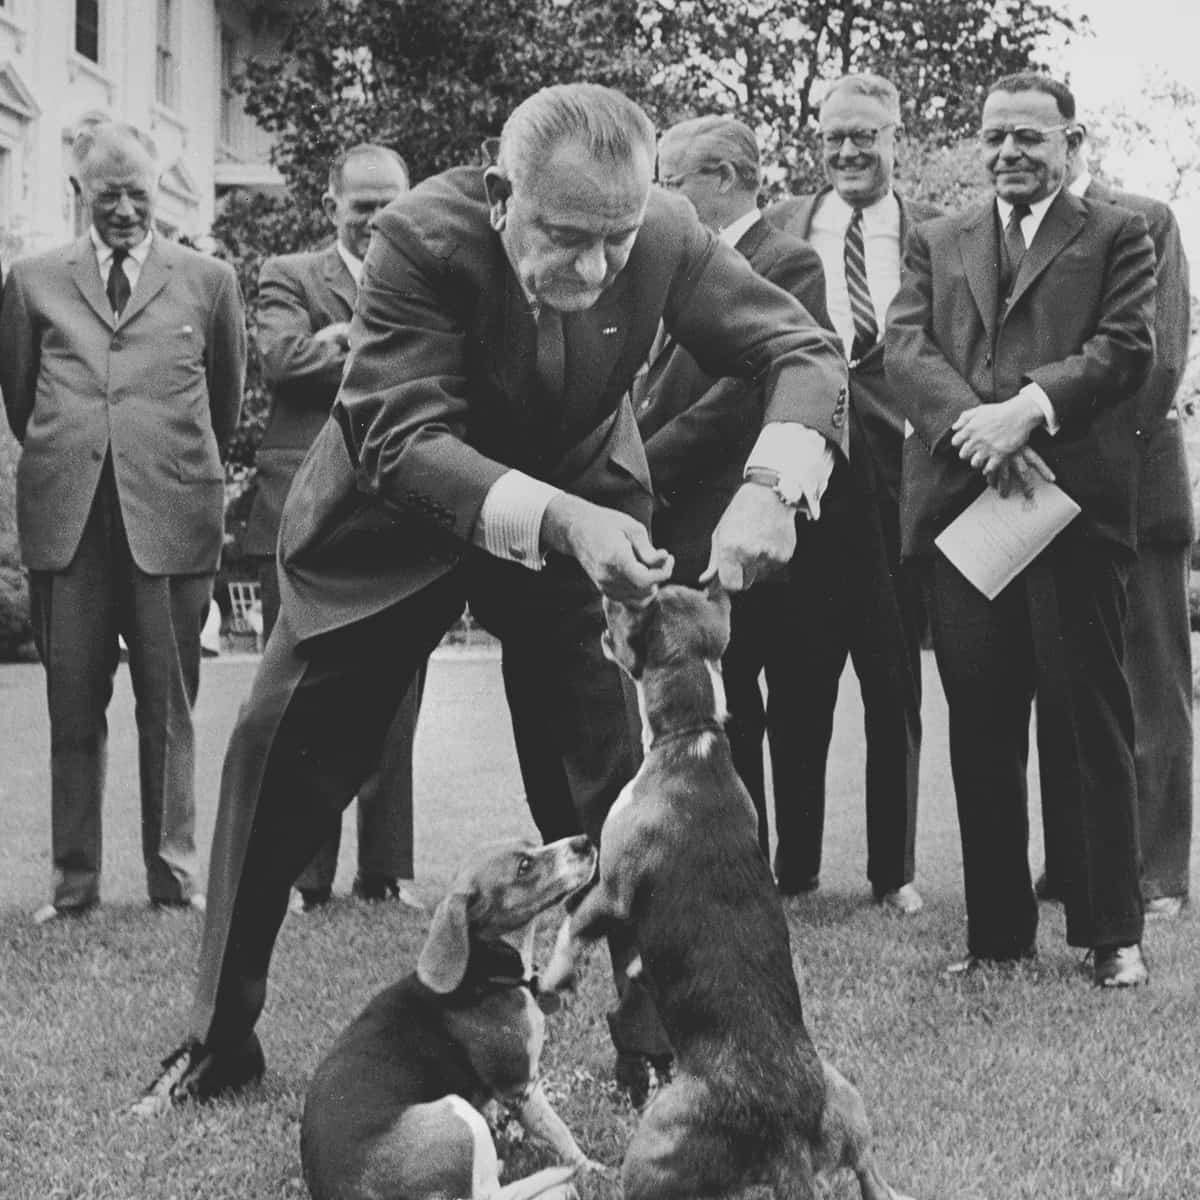 """FILE – In this April 27, 1964, file photo President Lyndon B. Johnson holds his dog """"Her"""" by the ears as White House visitors look on the White House lawn, Washington. At left is President Johnson's other dog, """"Him."""" This picture raised criticism from dog lovers. (AP Photo/Charles P. Gorry, File)"""